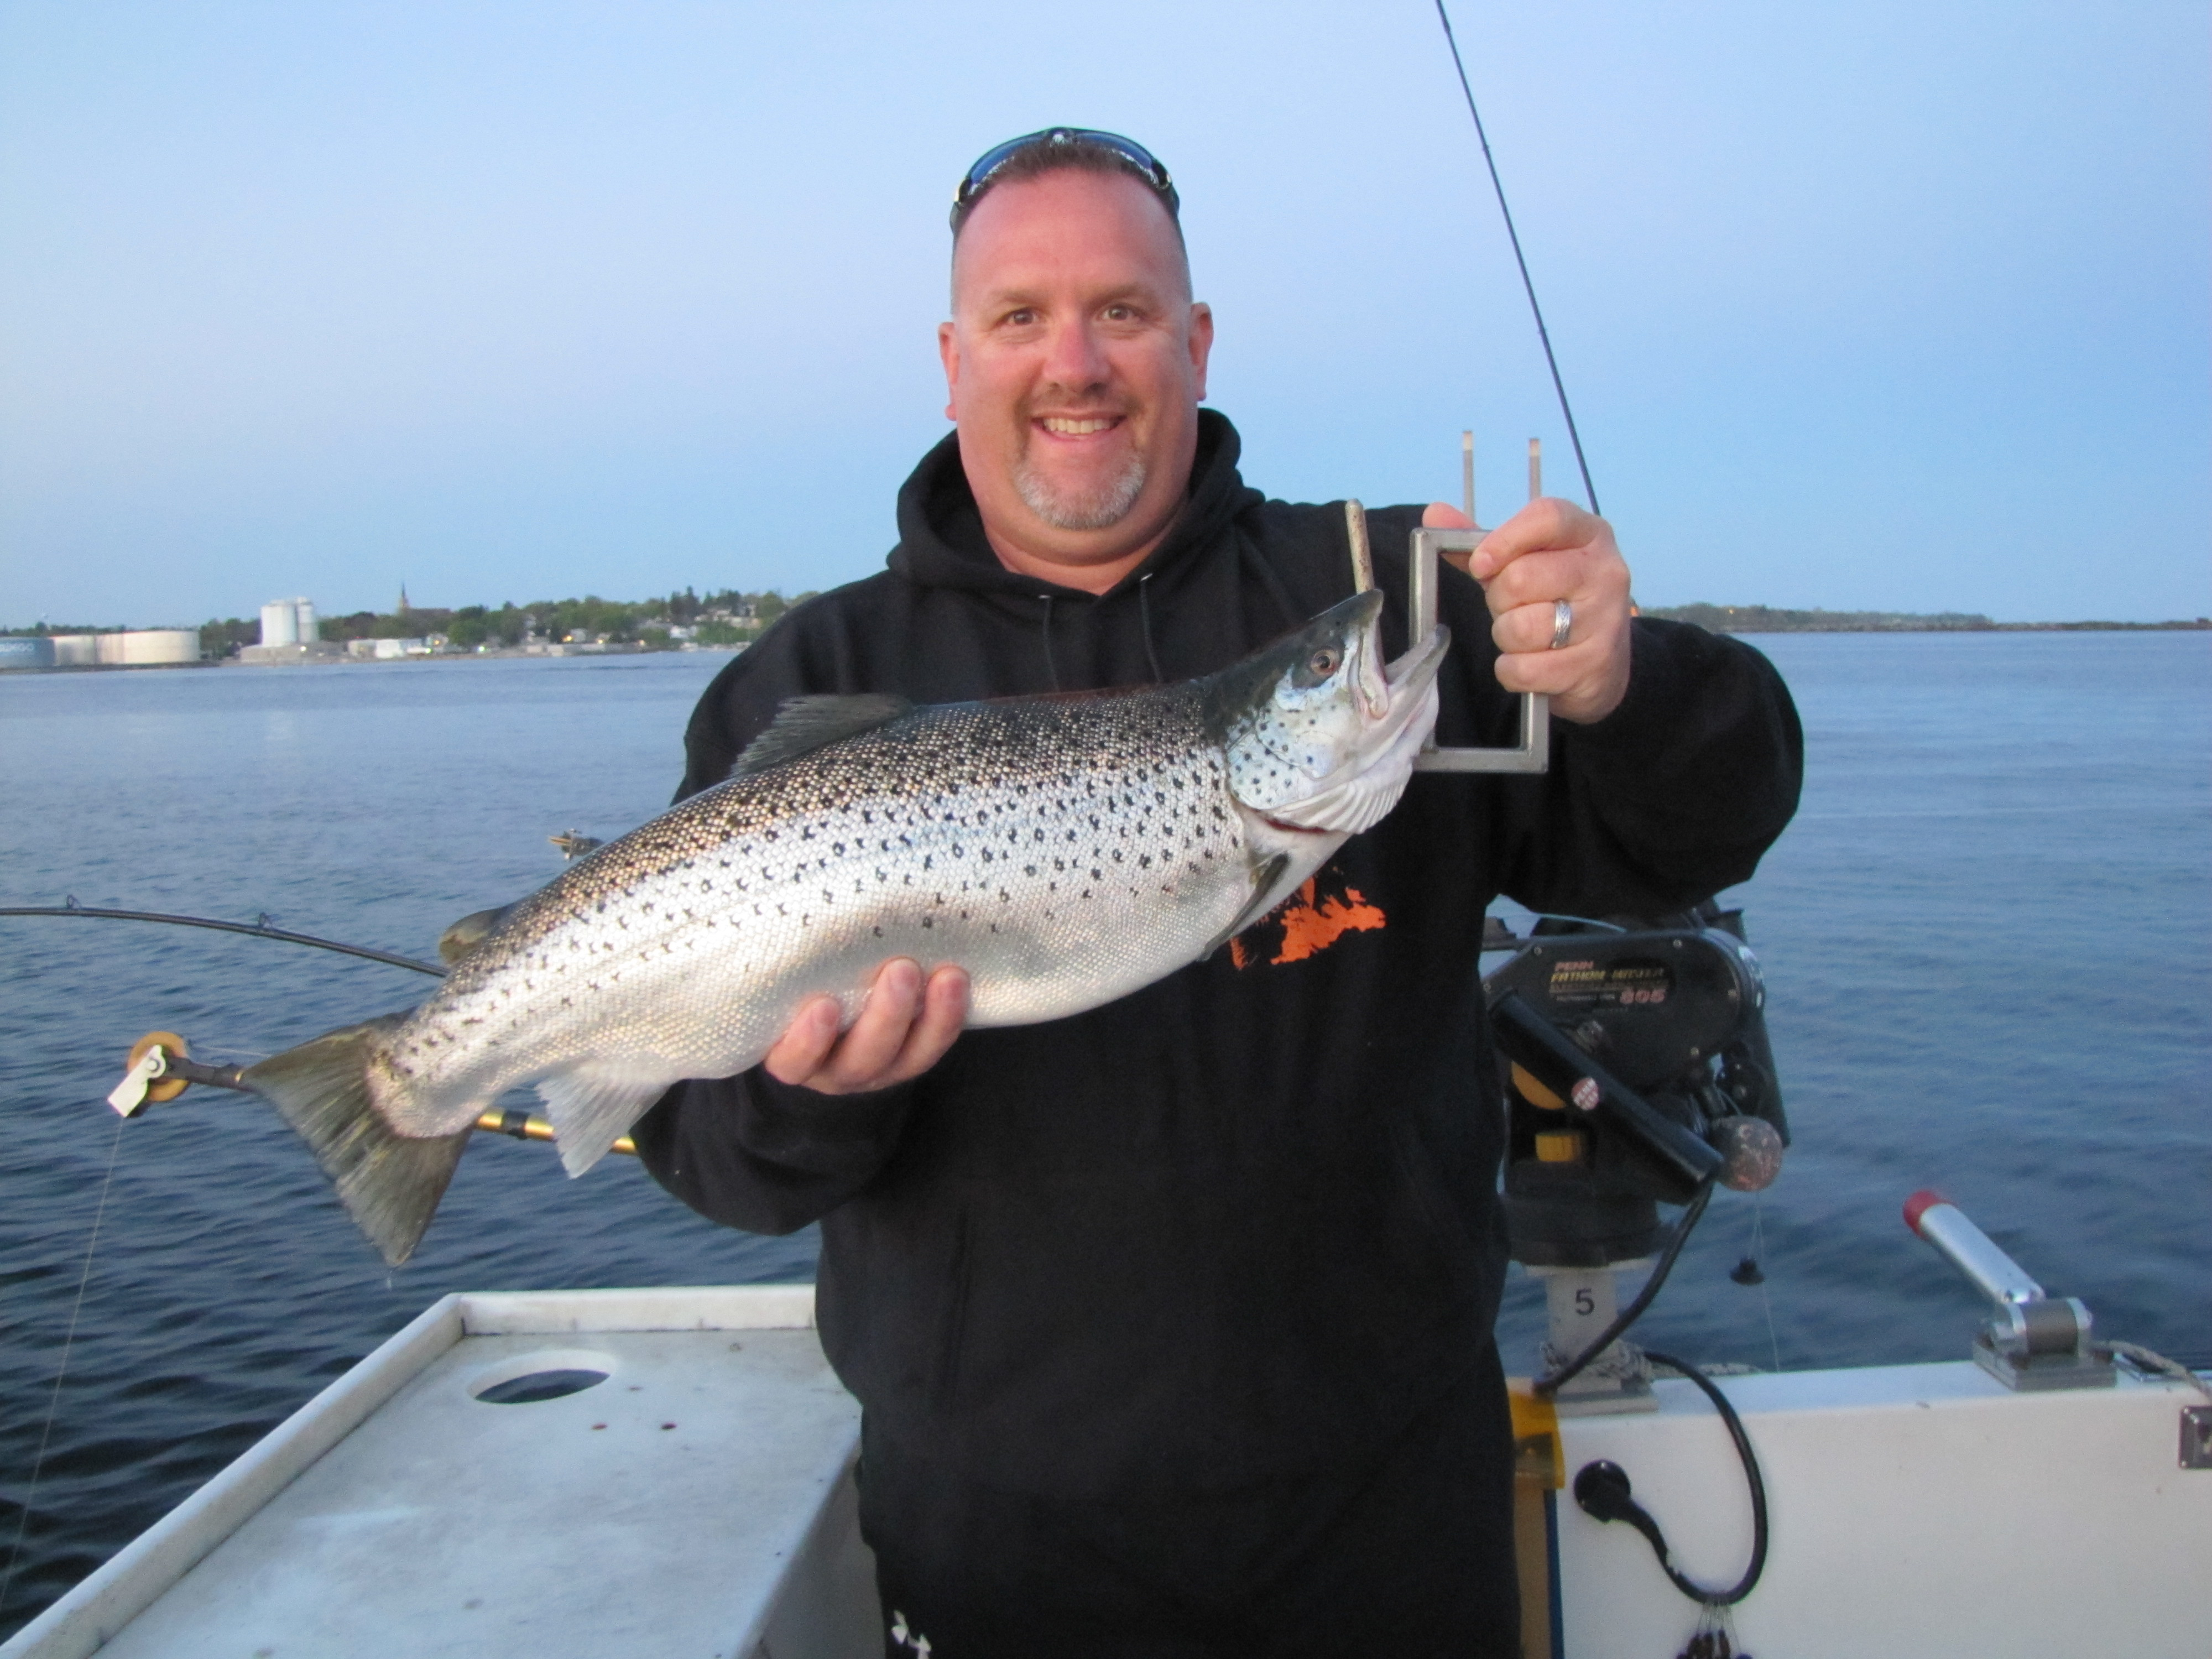 Lake ontario brown trout fishing tips fish doctor charters for Lake ontario salmon fishing charters